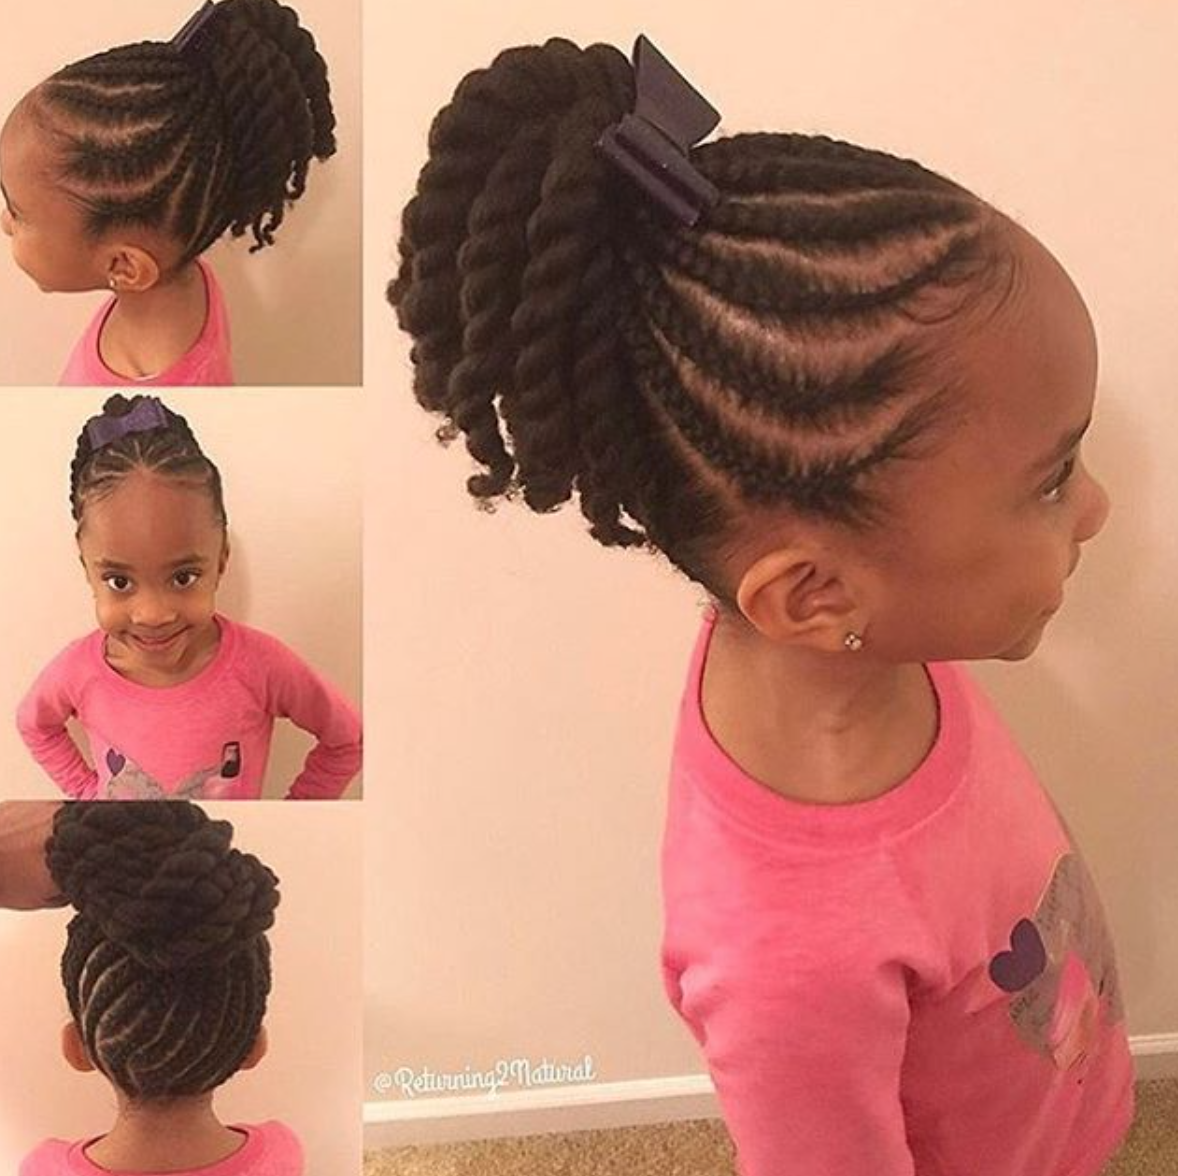 Hairstyles For Kids So Adorable Via Returning2Natural  Httpsblackhairinformation